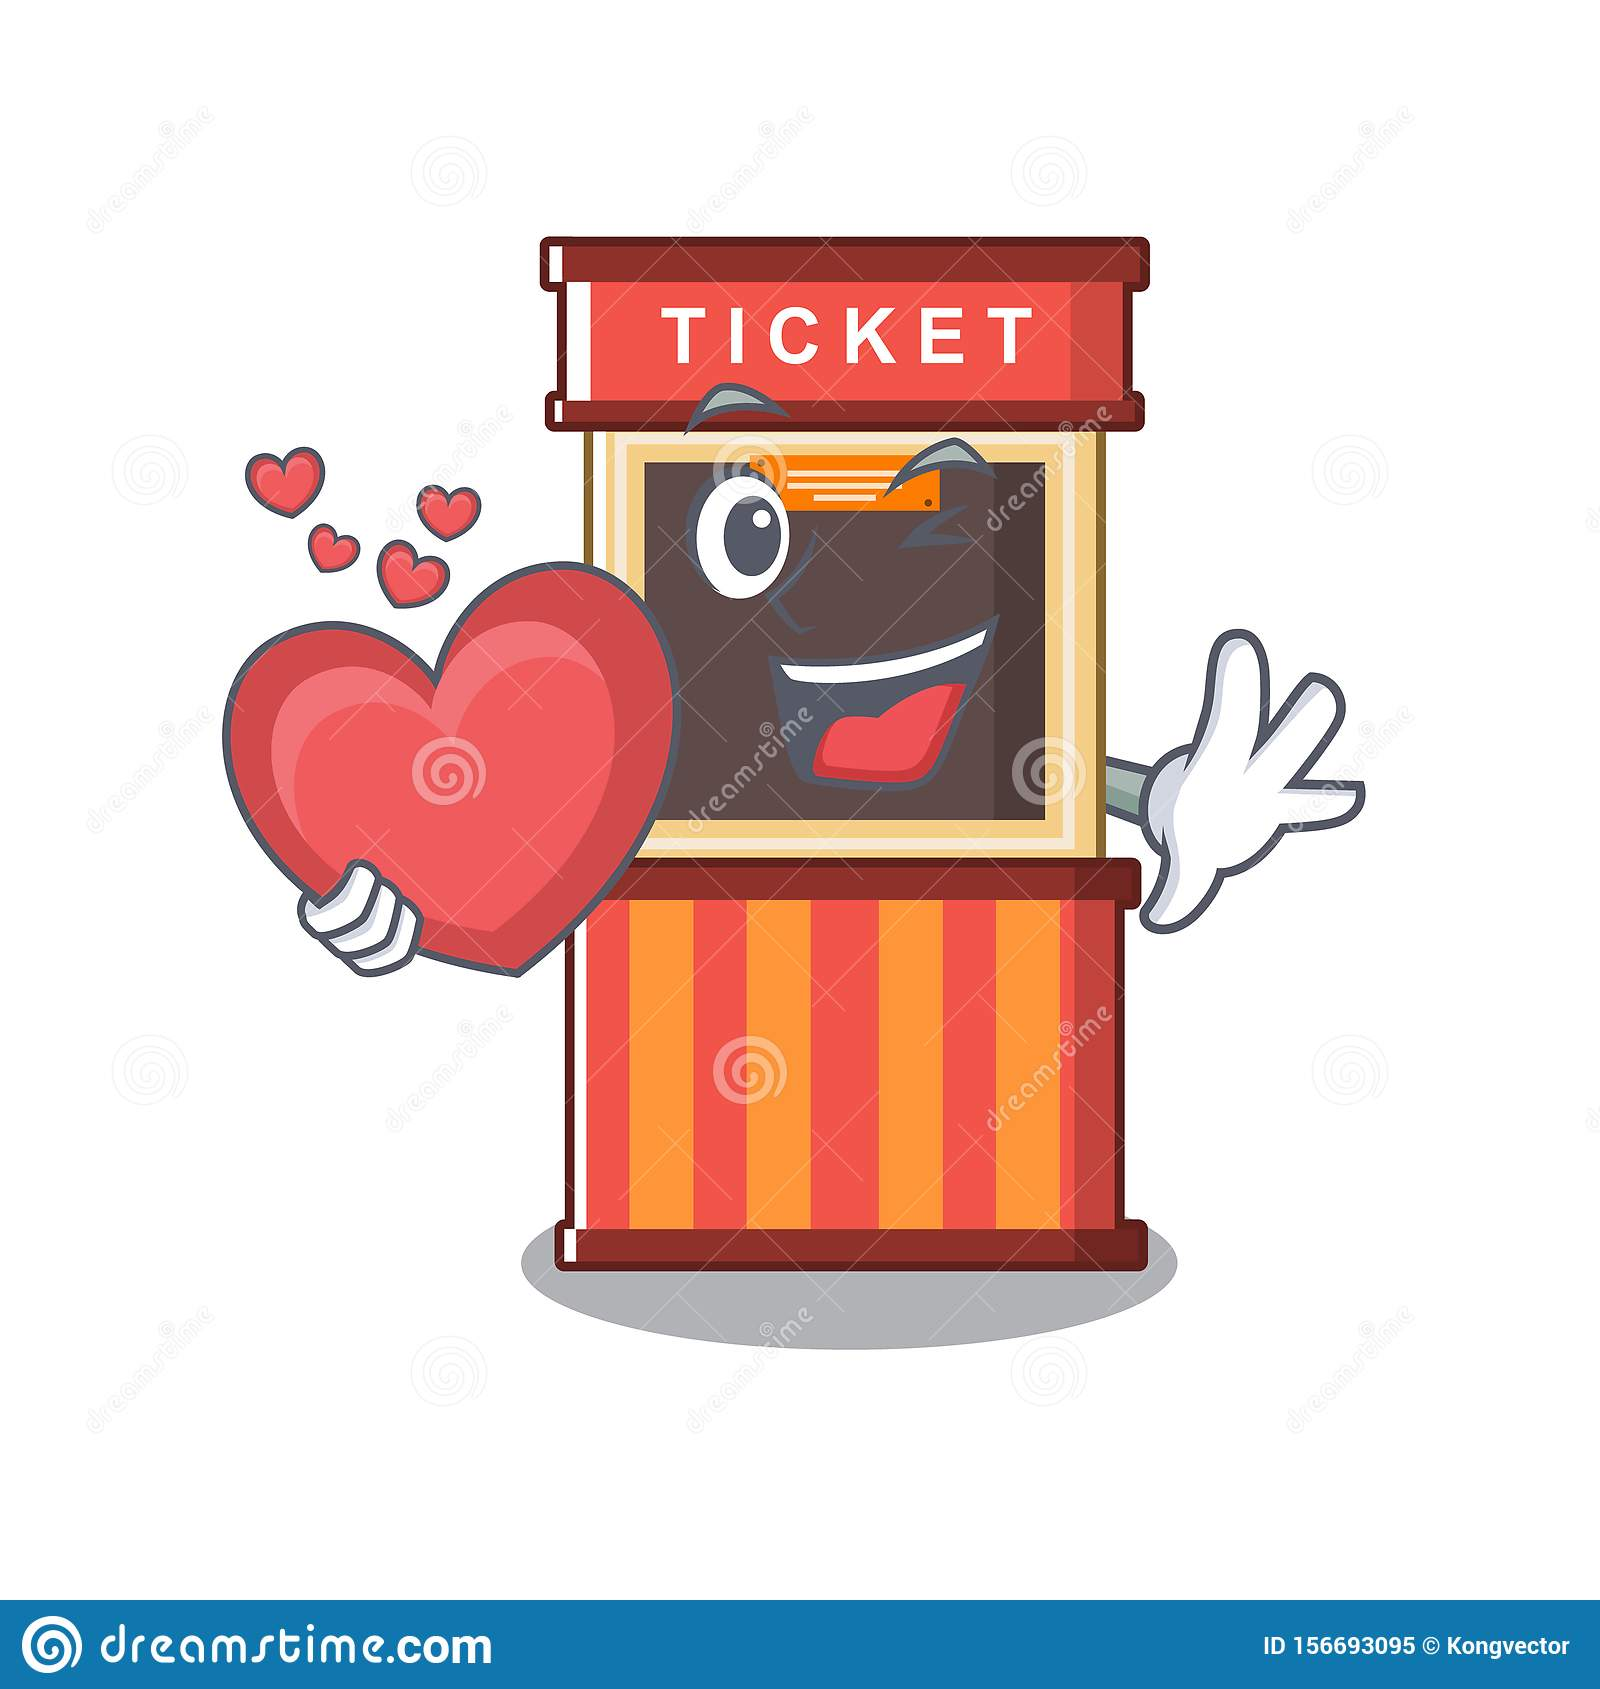 With Heart Ticket Booth Isolated With The Cartoon Stock Vector Illustration Of Park Fair 156693095